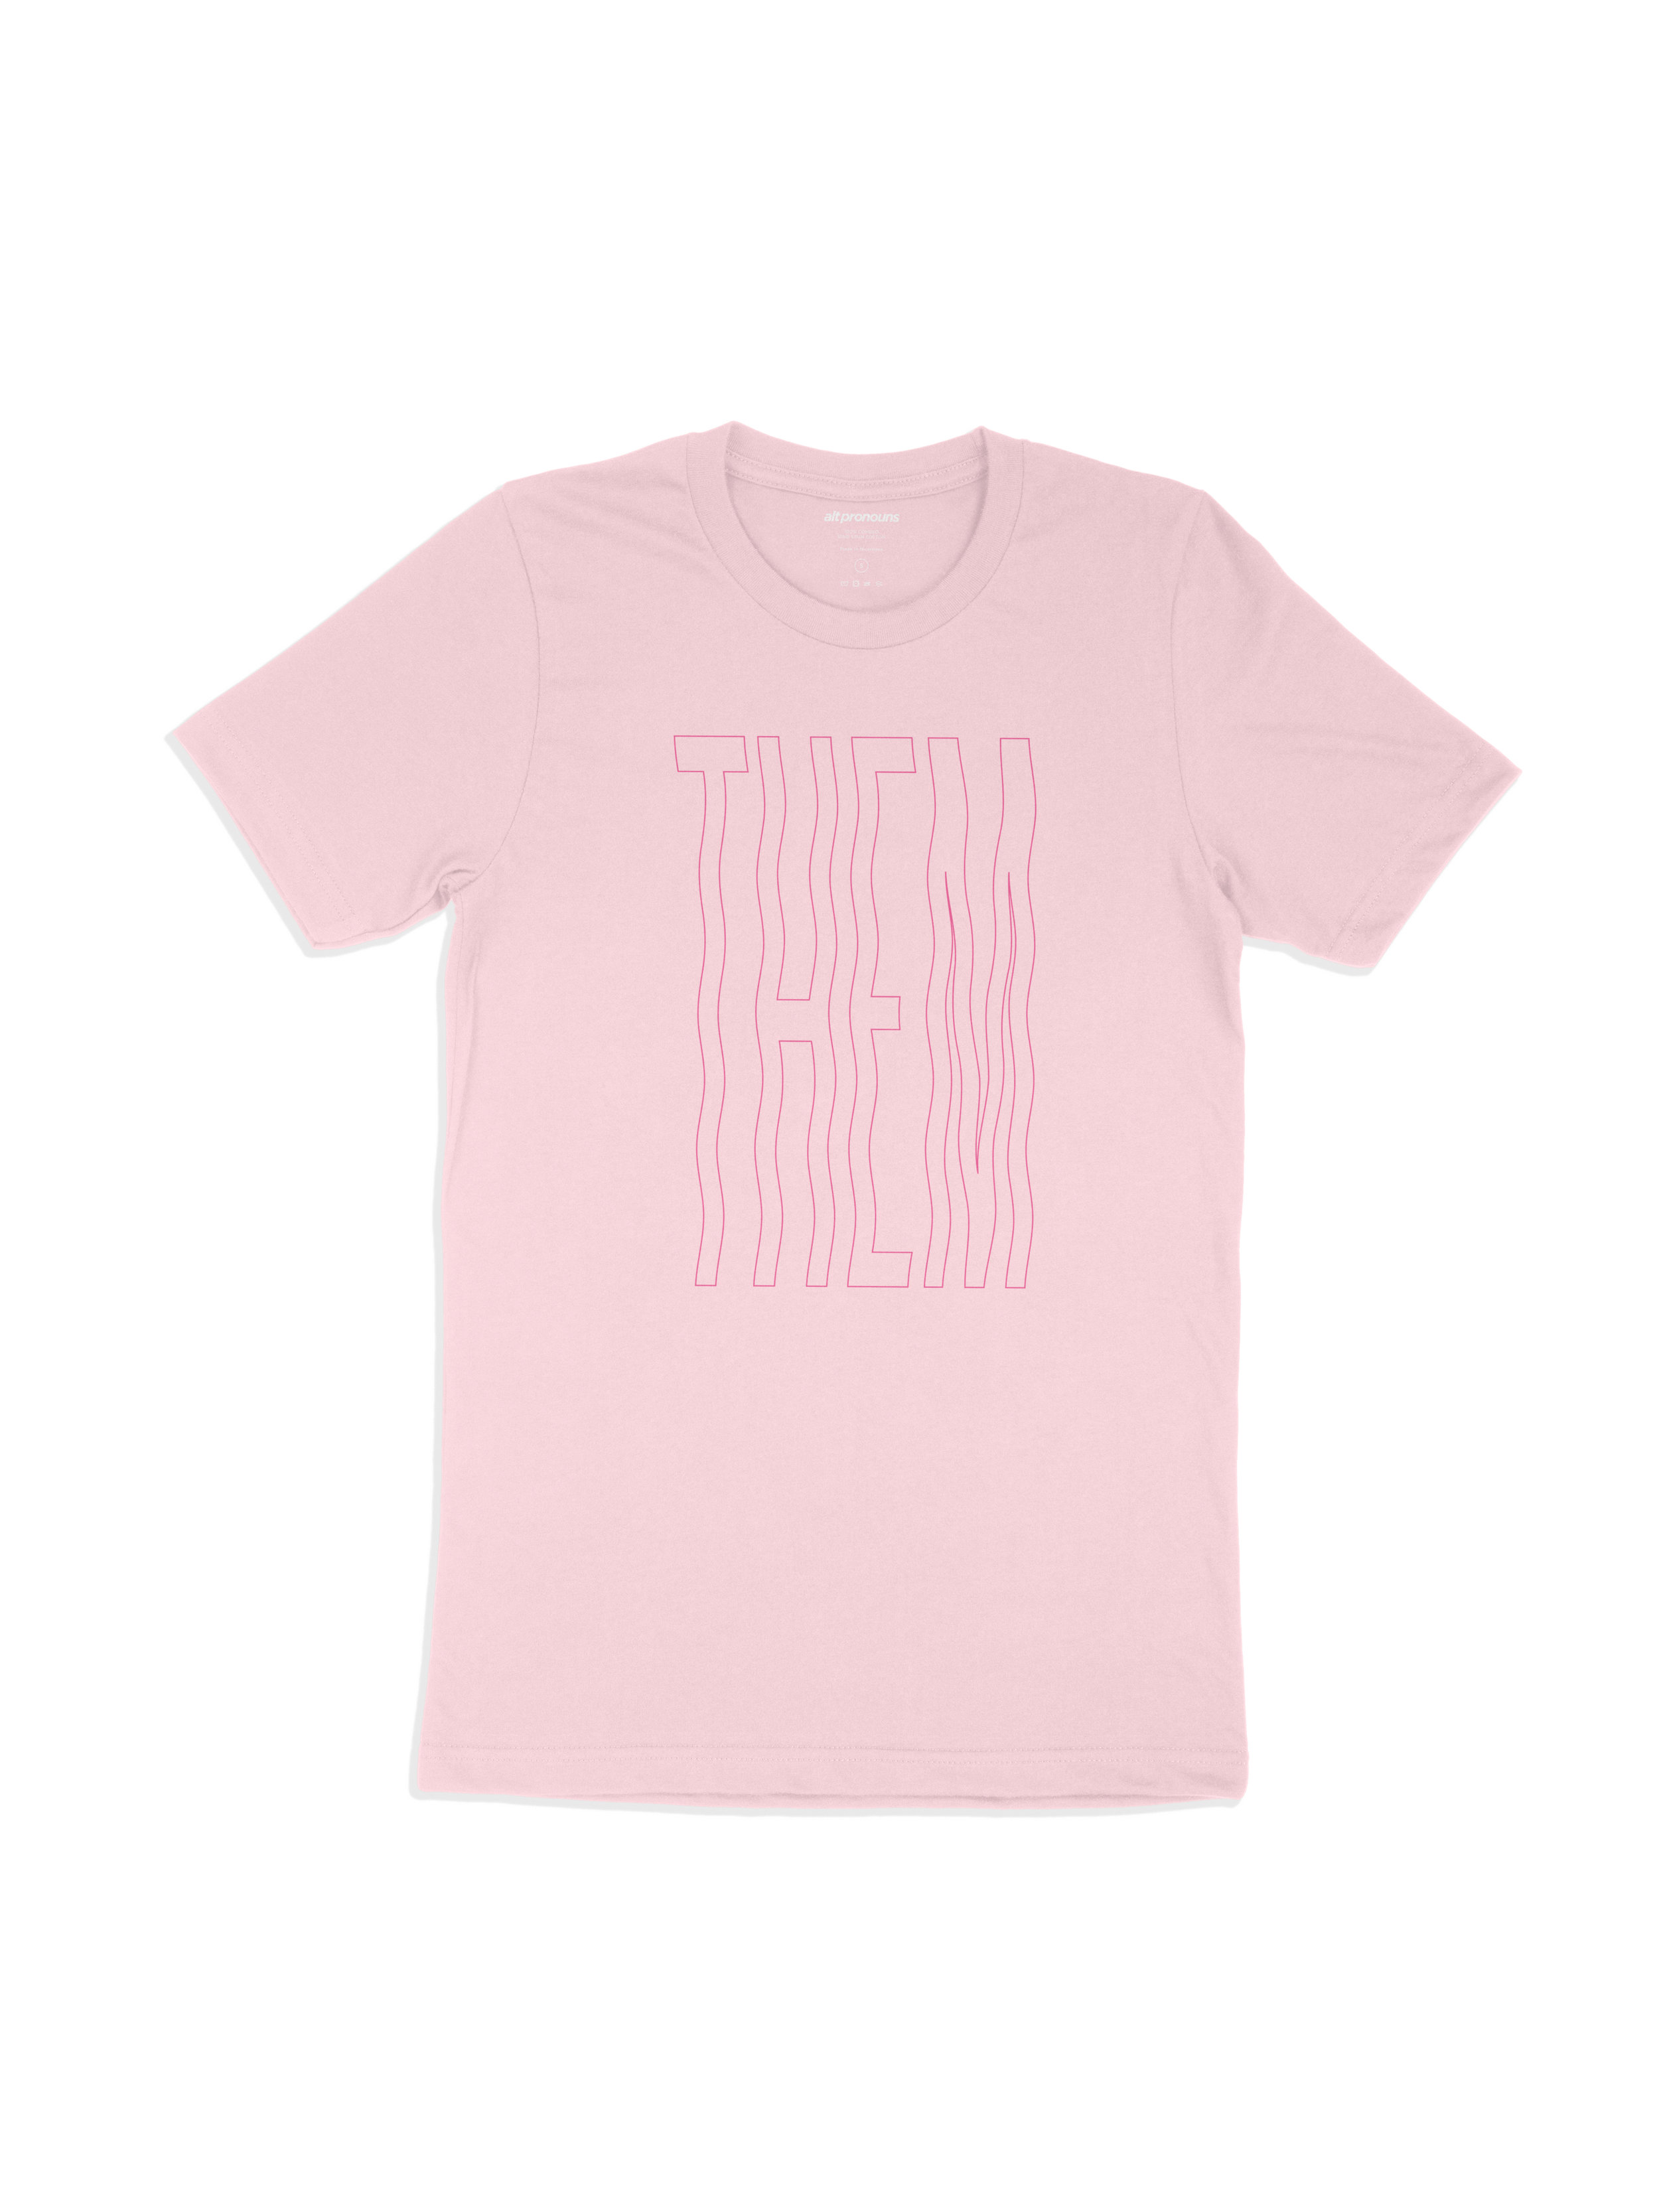 Alt Pronouns Them Vibes Tee in Pink